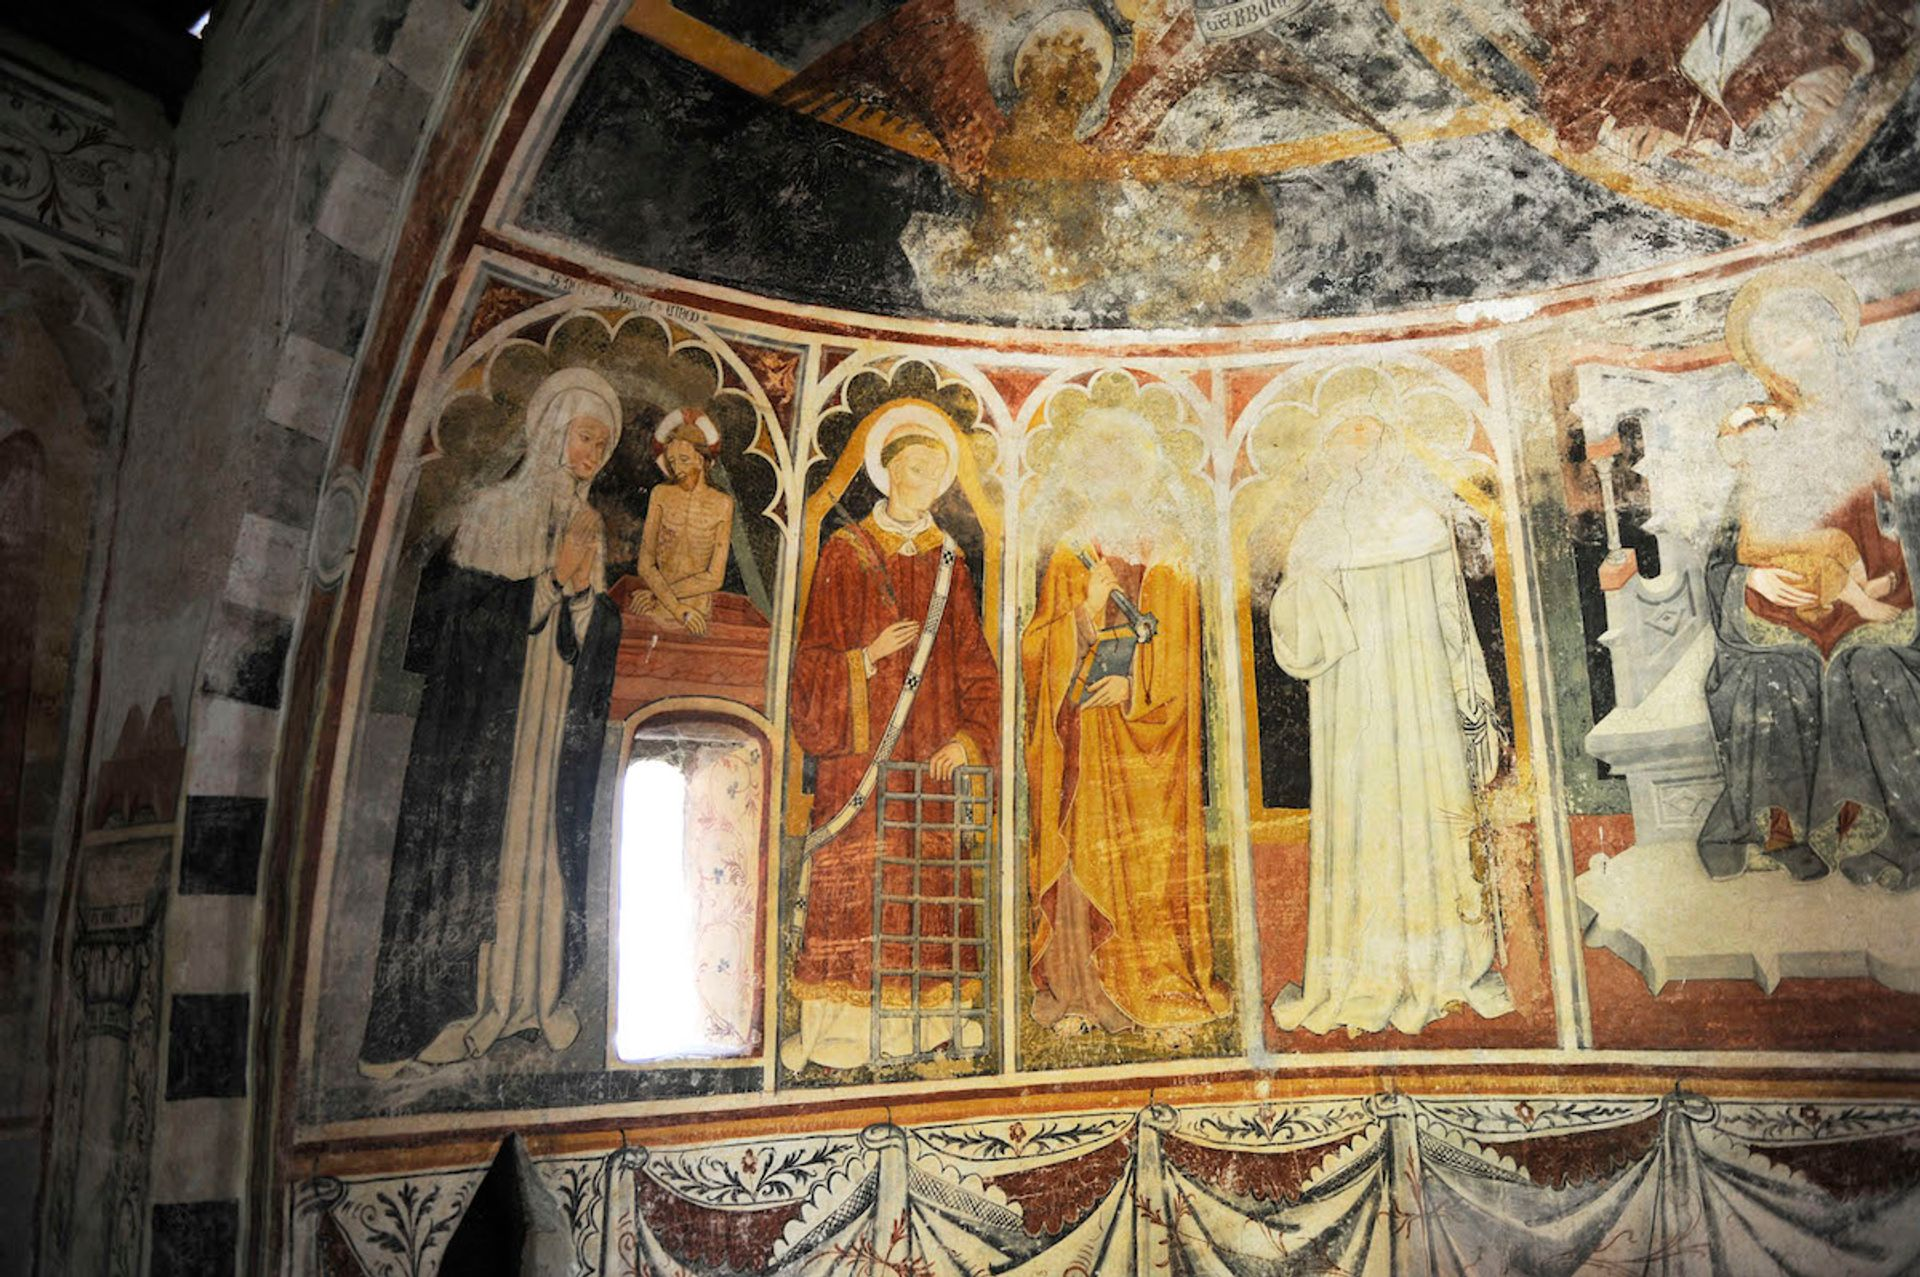 The interior of the San Bernardo at Aosta a Piozzo, one of the churches whose door the app will open Courtesy of Chiese a porte aperte